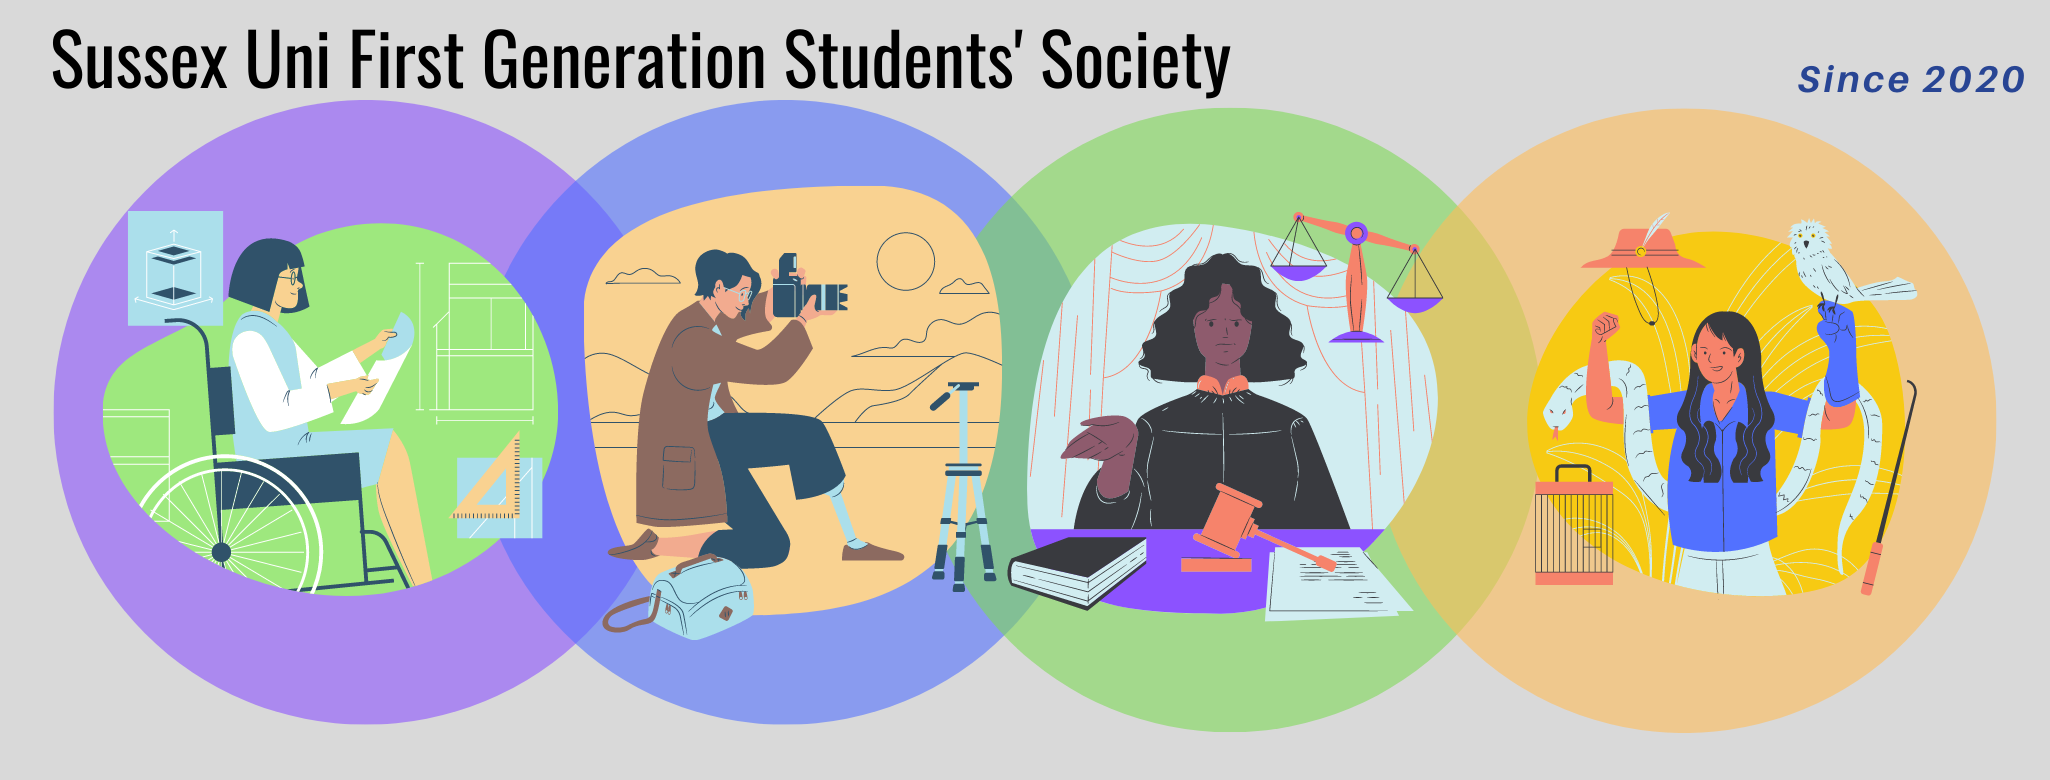 First Generation Students' Society image